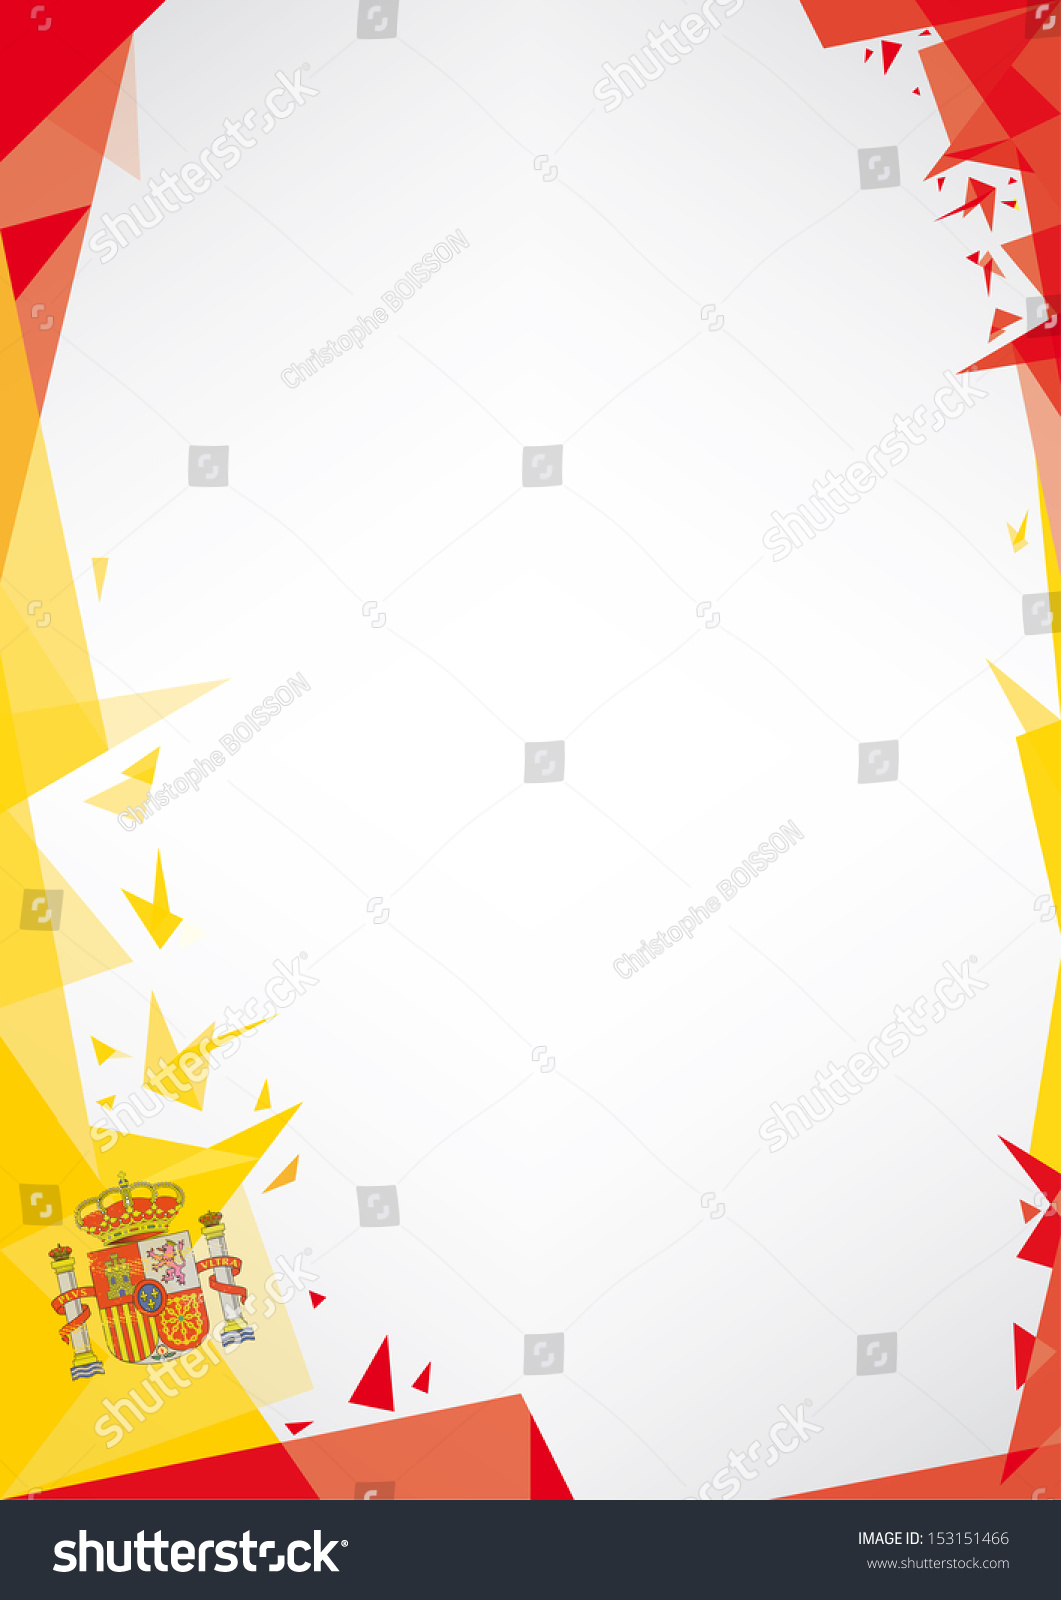 Poster design background - Background Origami Of Spain A Design Background Origami Style For A Very Nice